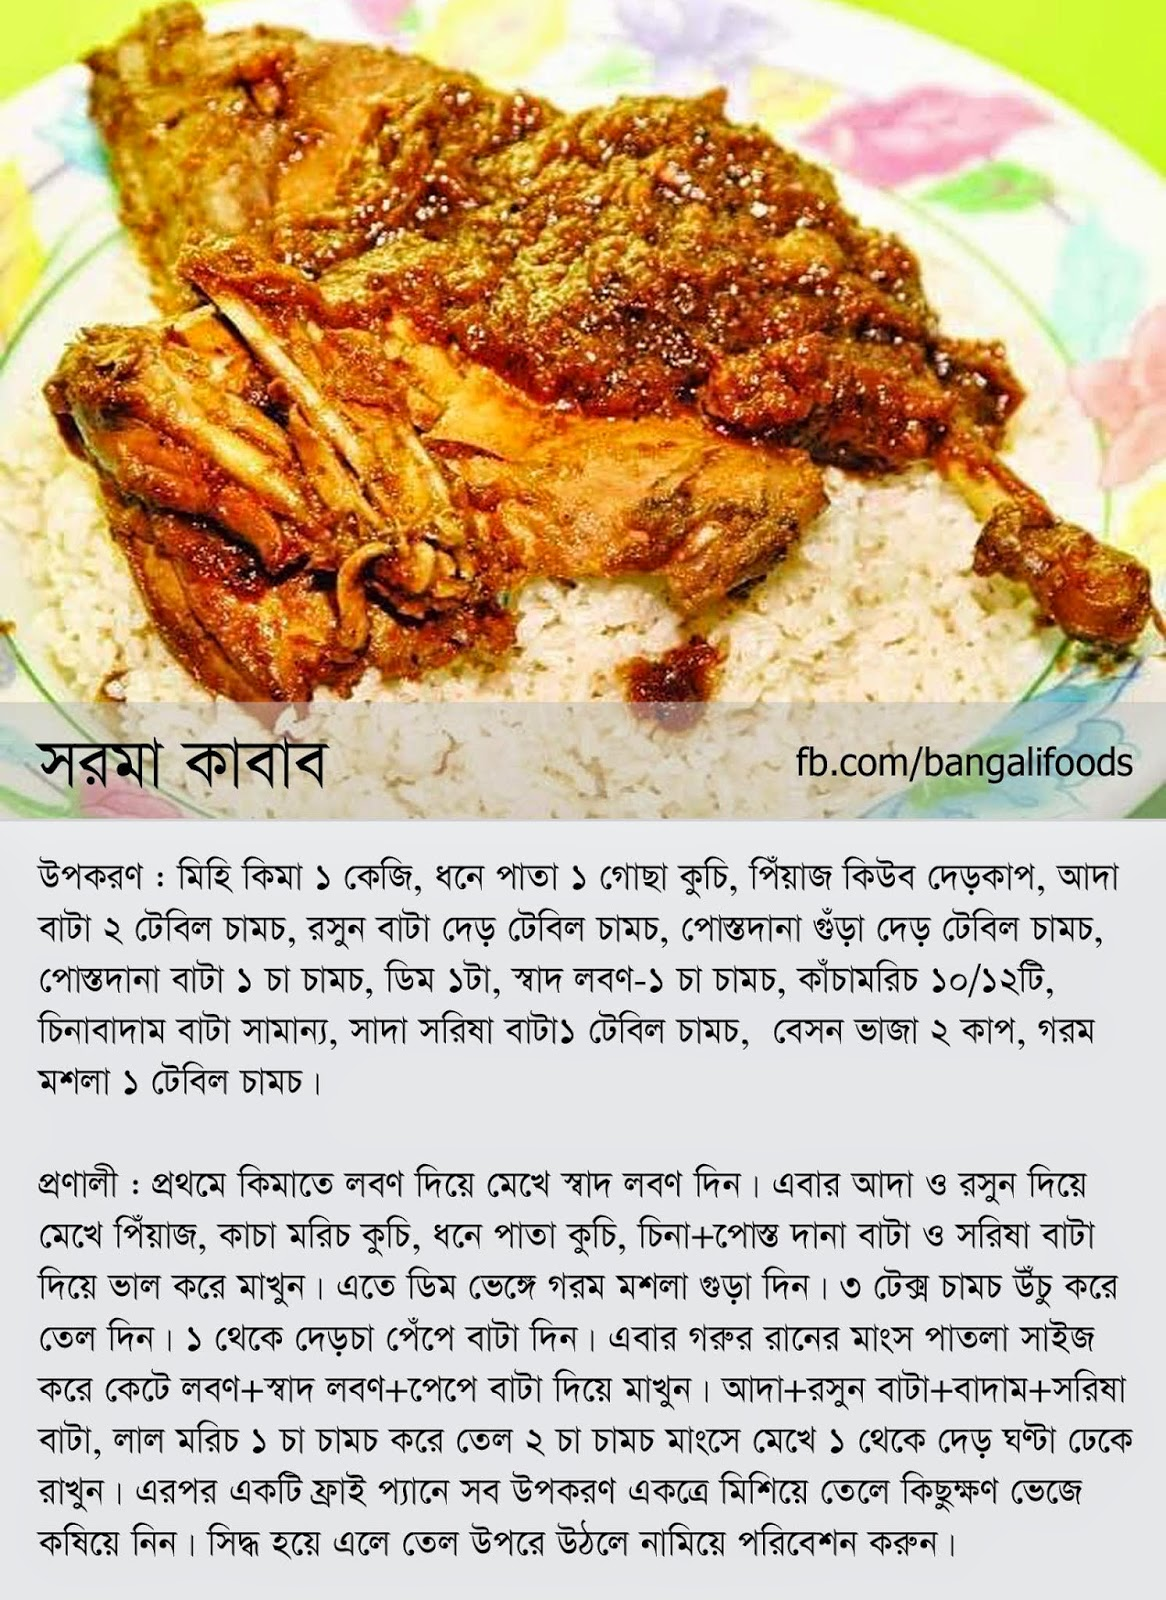 Bangali foods bahari kabab recipe in bangla font shorma kabab forumfinder Choice Image